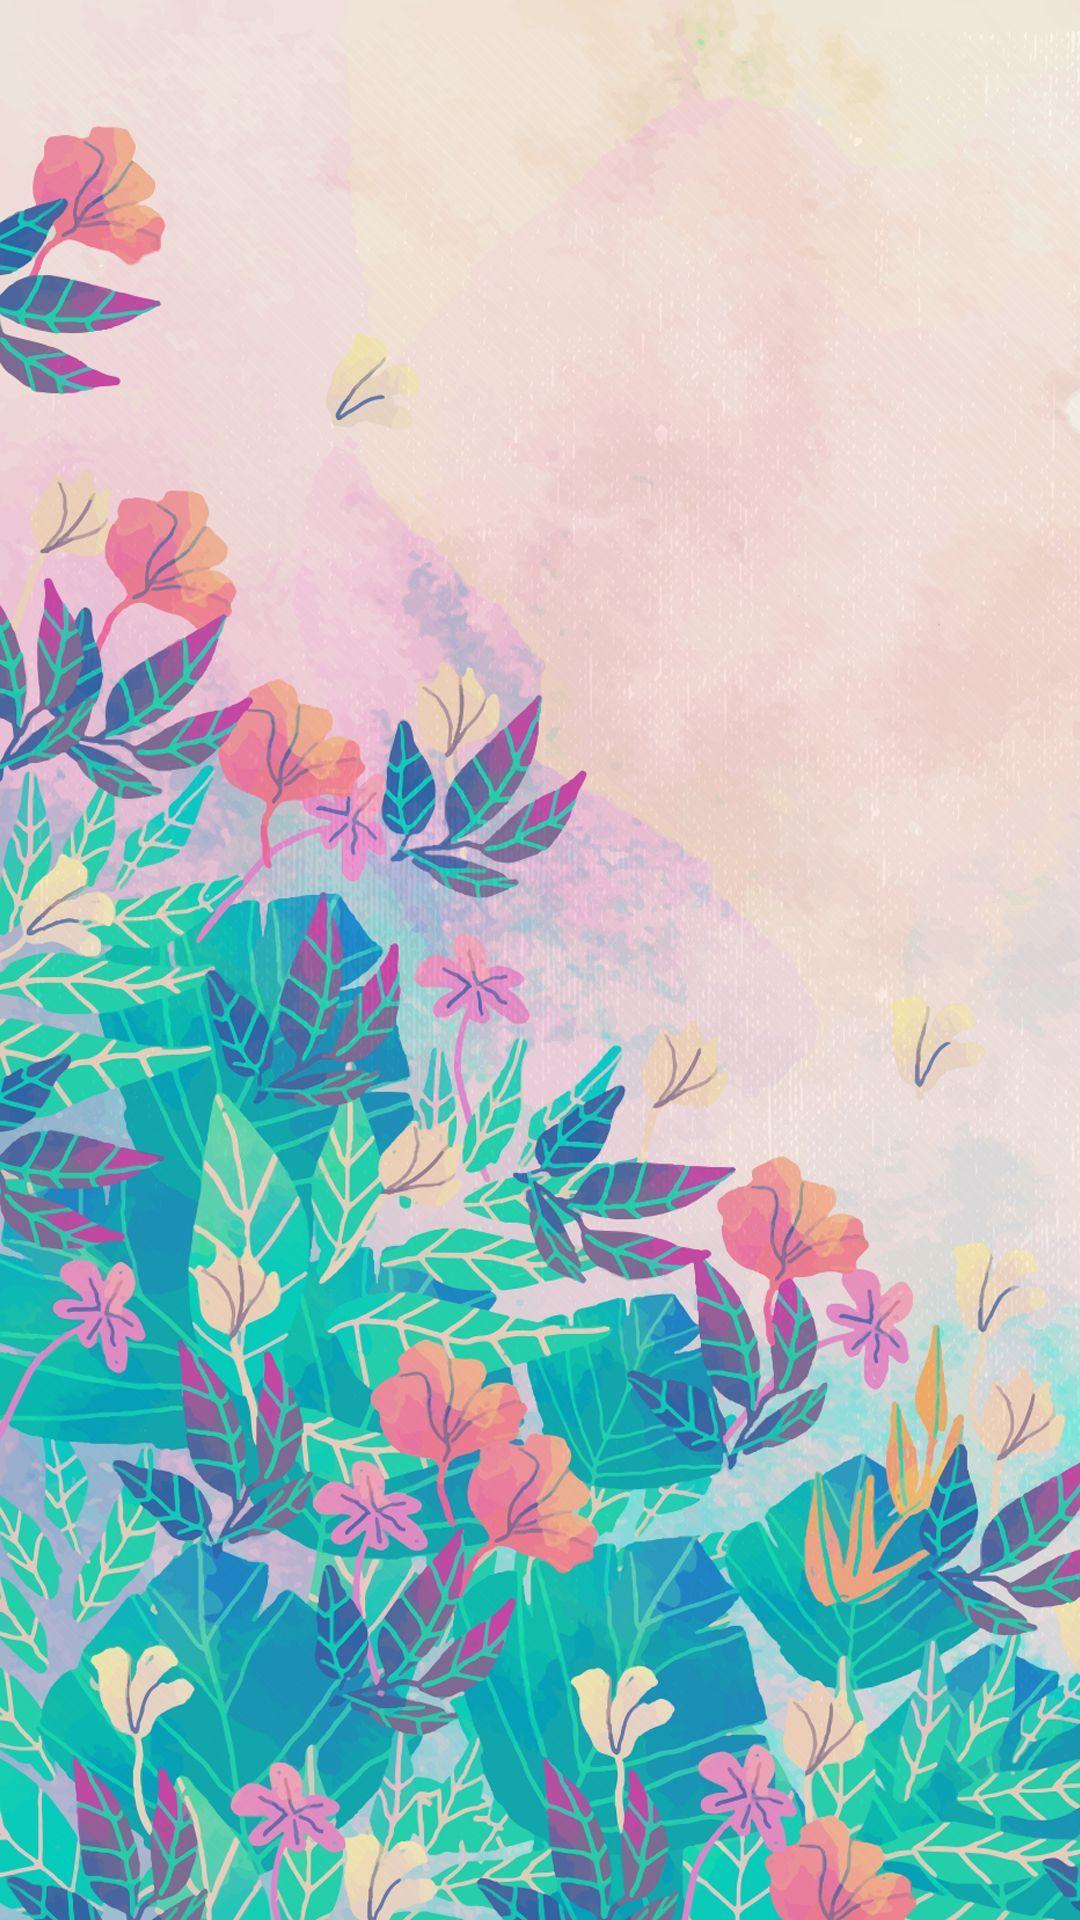 1080x1920 55+ Watercolor Flowers Blue Pink Wallpapers - Download at ...